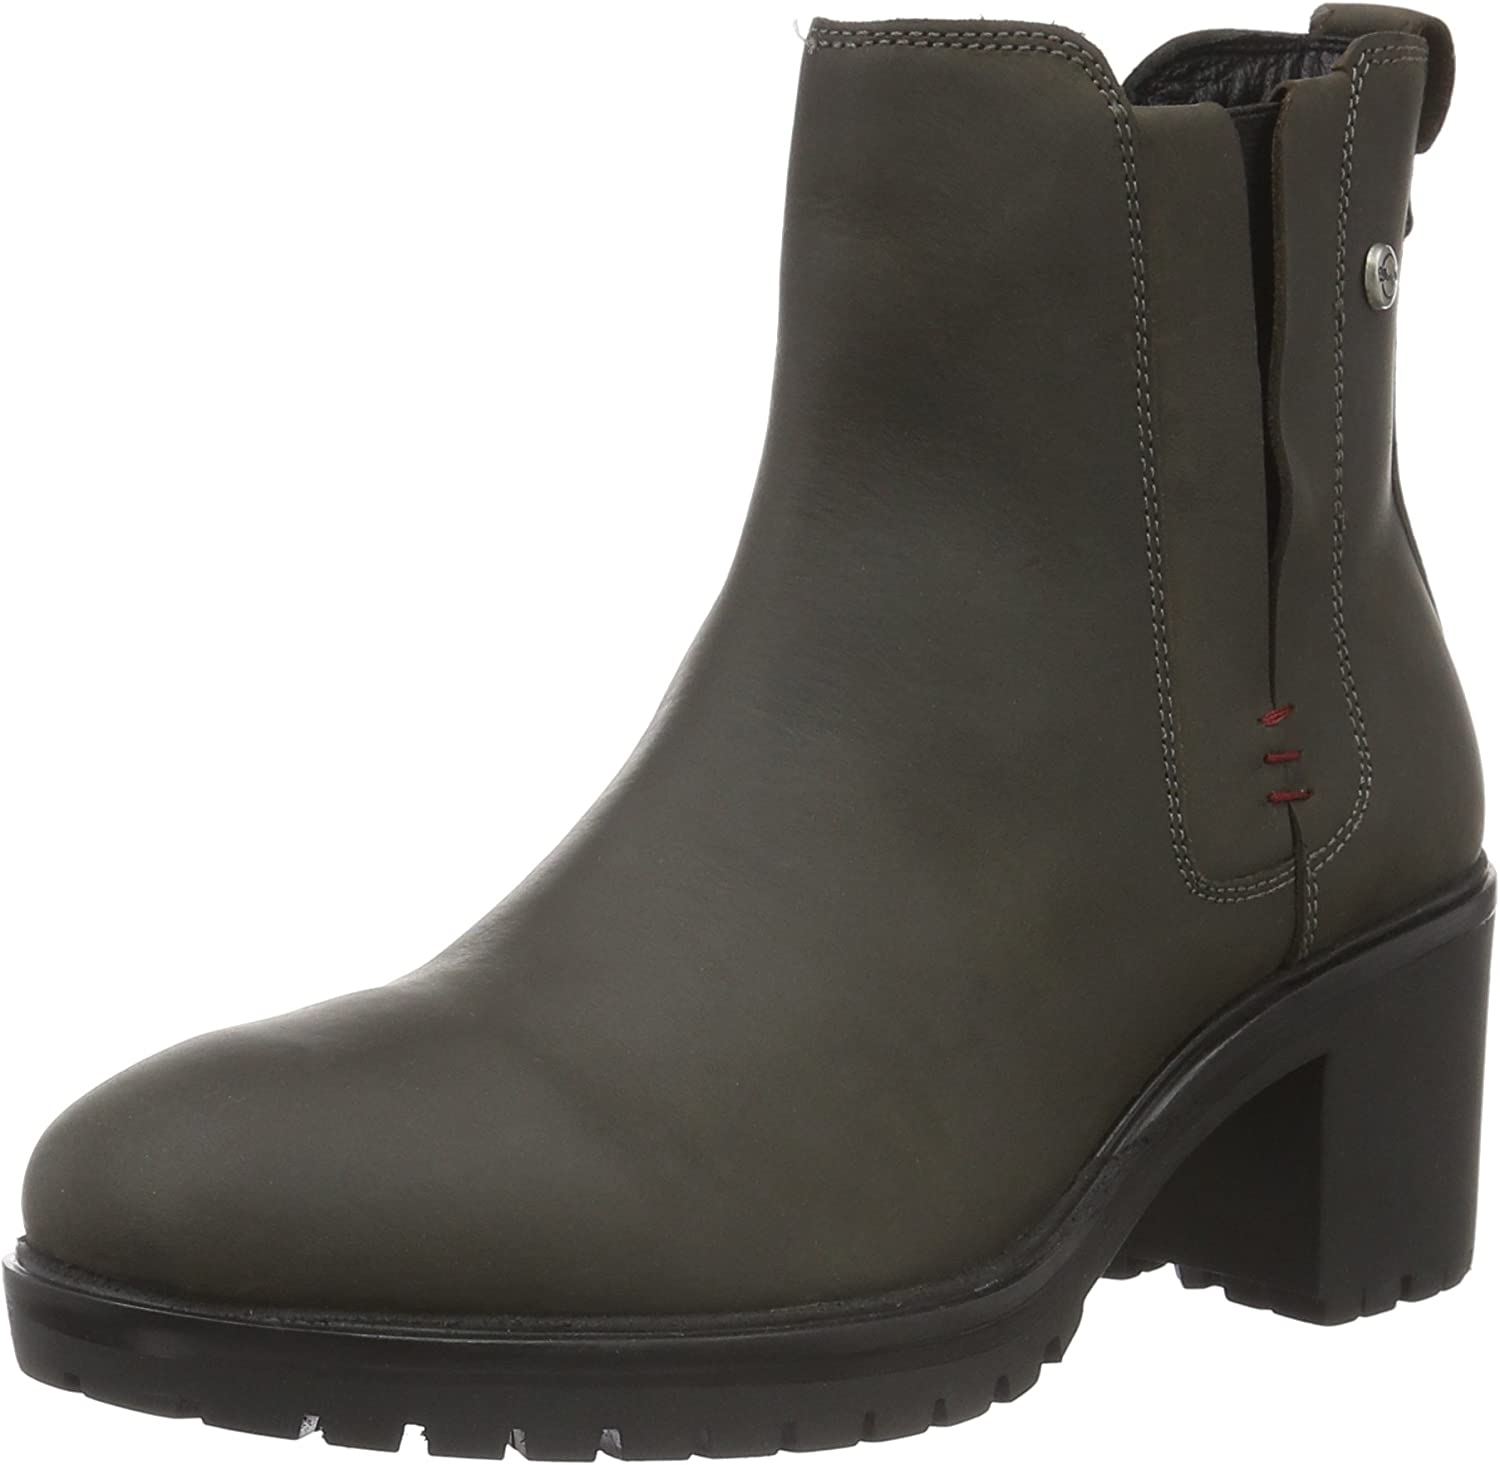 Wrangler Boots Womens Leather Grey